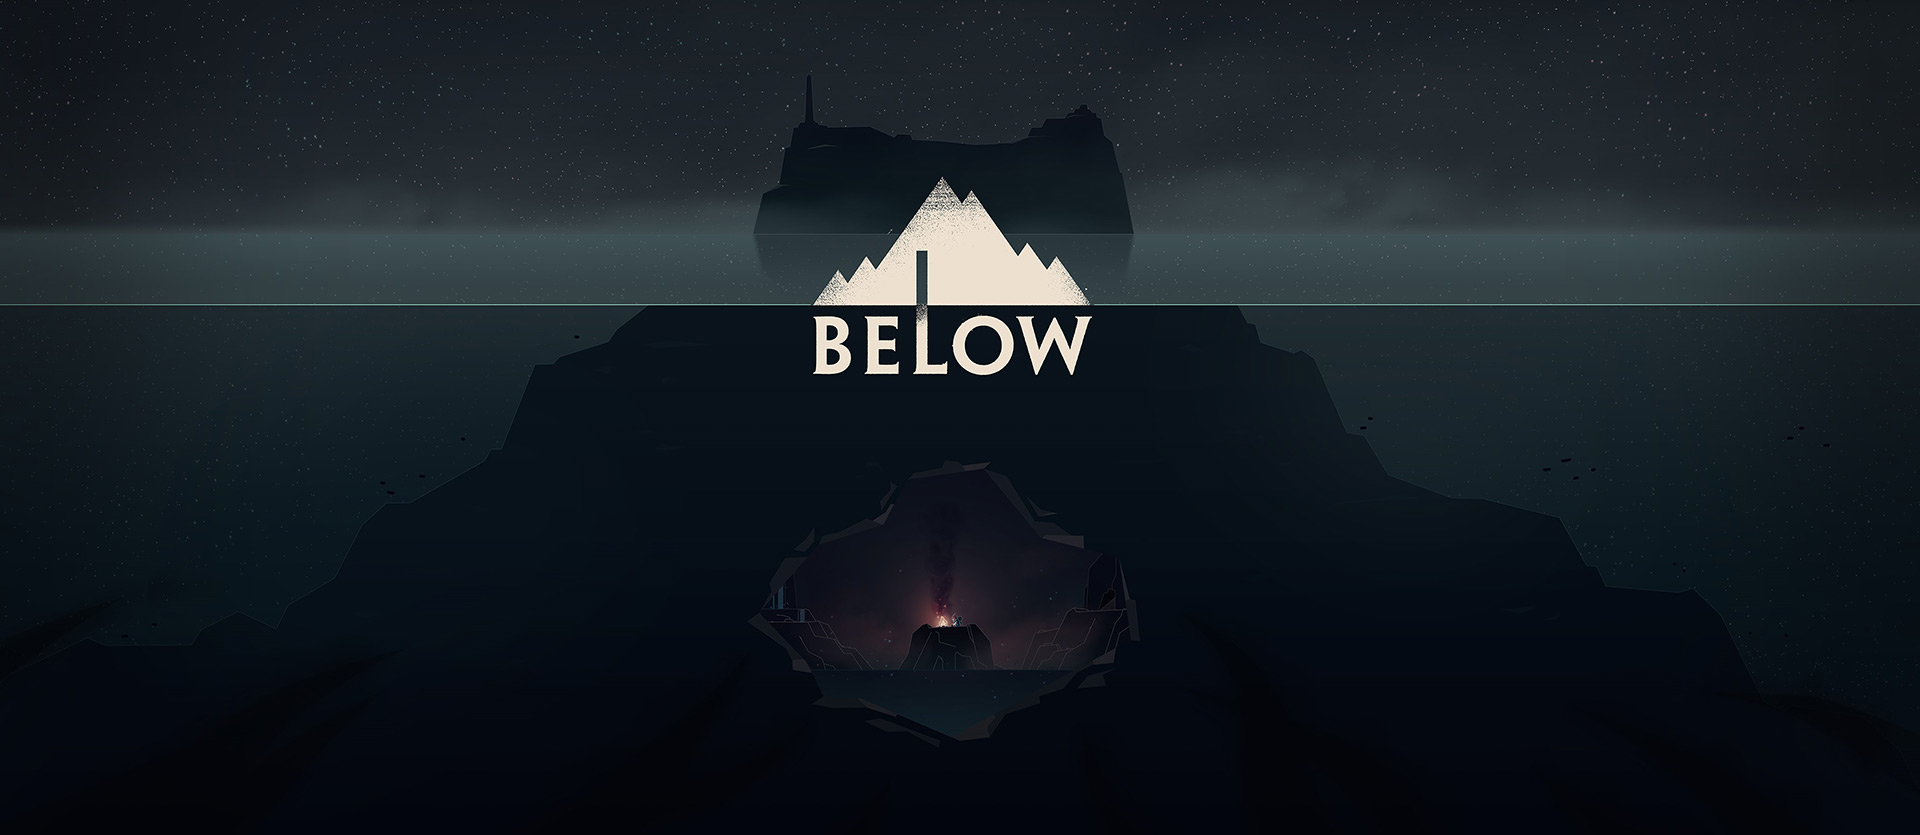 Island and Below logo